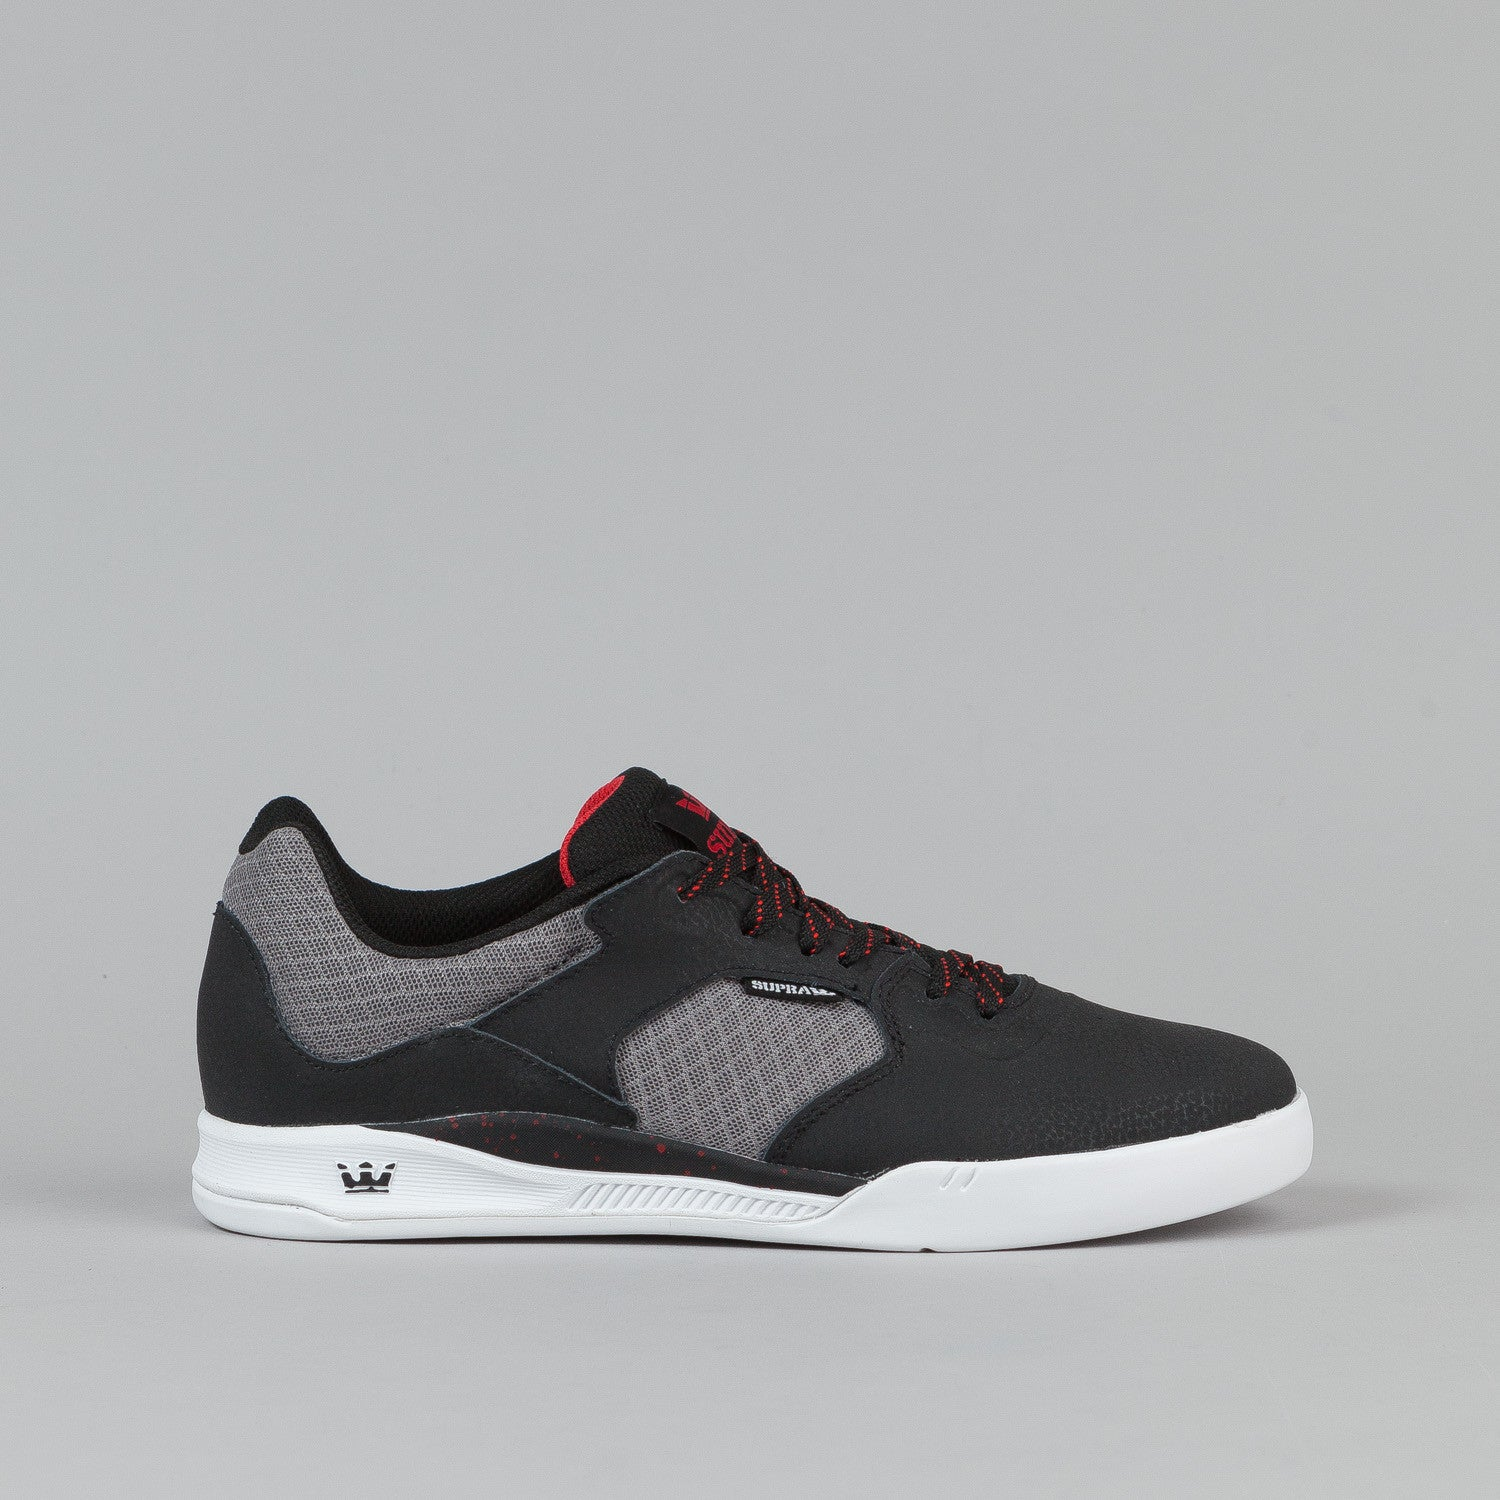 Supra Avex Shoes